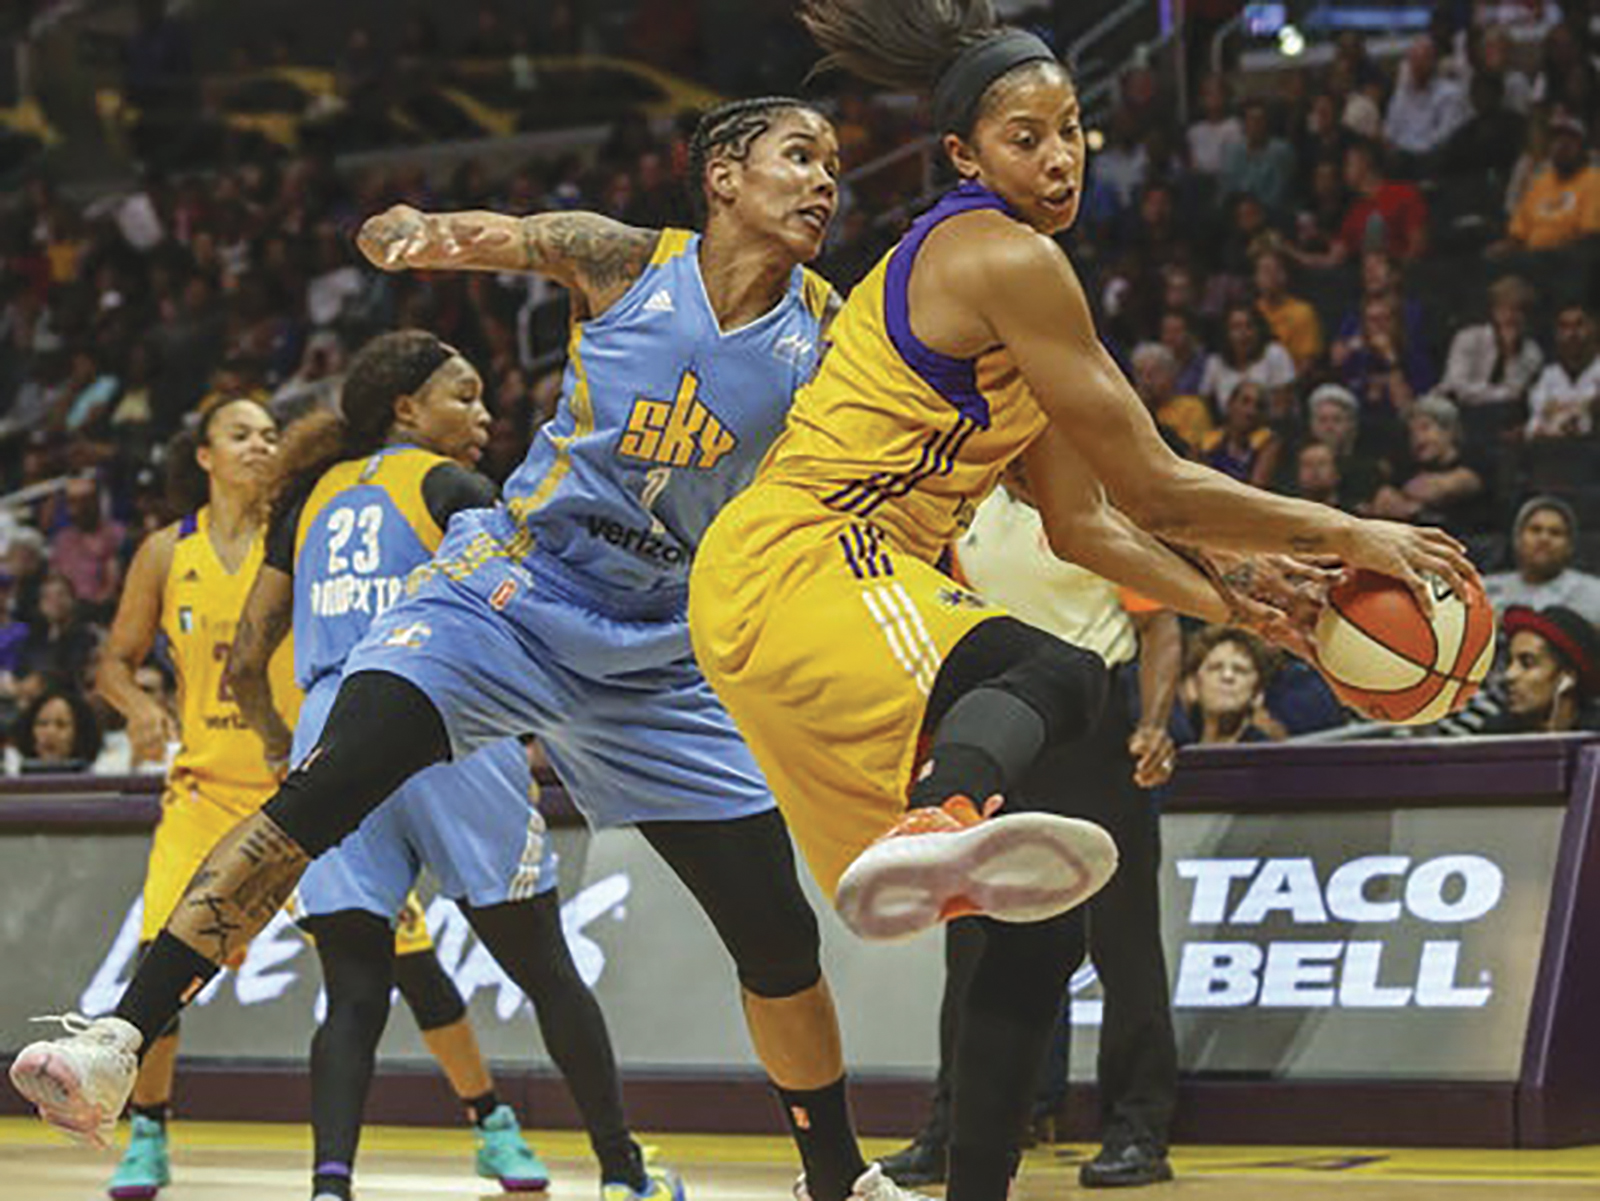 Los Angeles Sparks forward Candace Parker, right, and Chicago Sky forward Tamera Young reach for the ball during the second half of Game 2 of a WBNA basketball semifinal in Los Angeles on Friday, Sept. 30, 2016. The Sparks won 99-84. (AP Photo/Ringo H.W. Chiu)